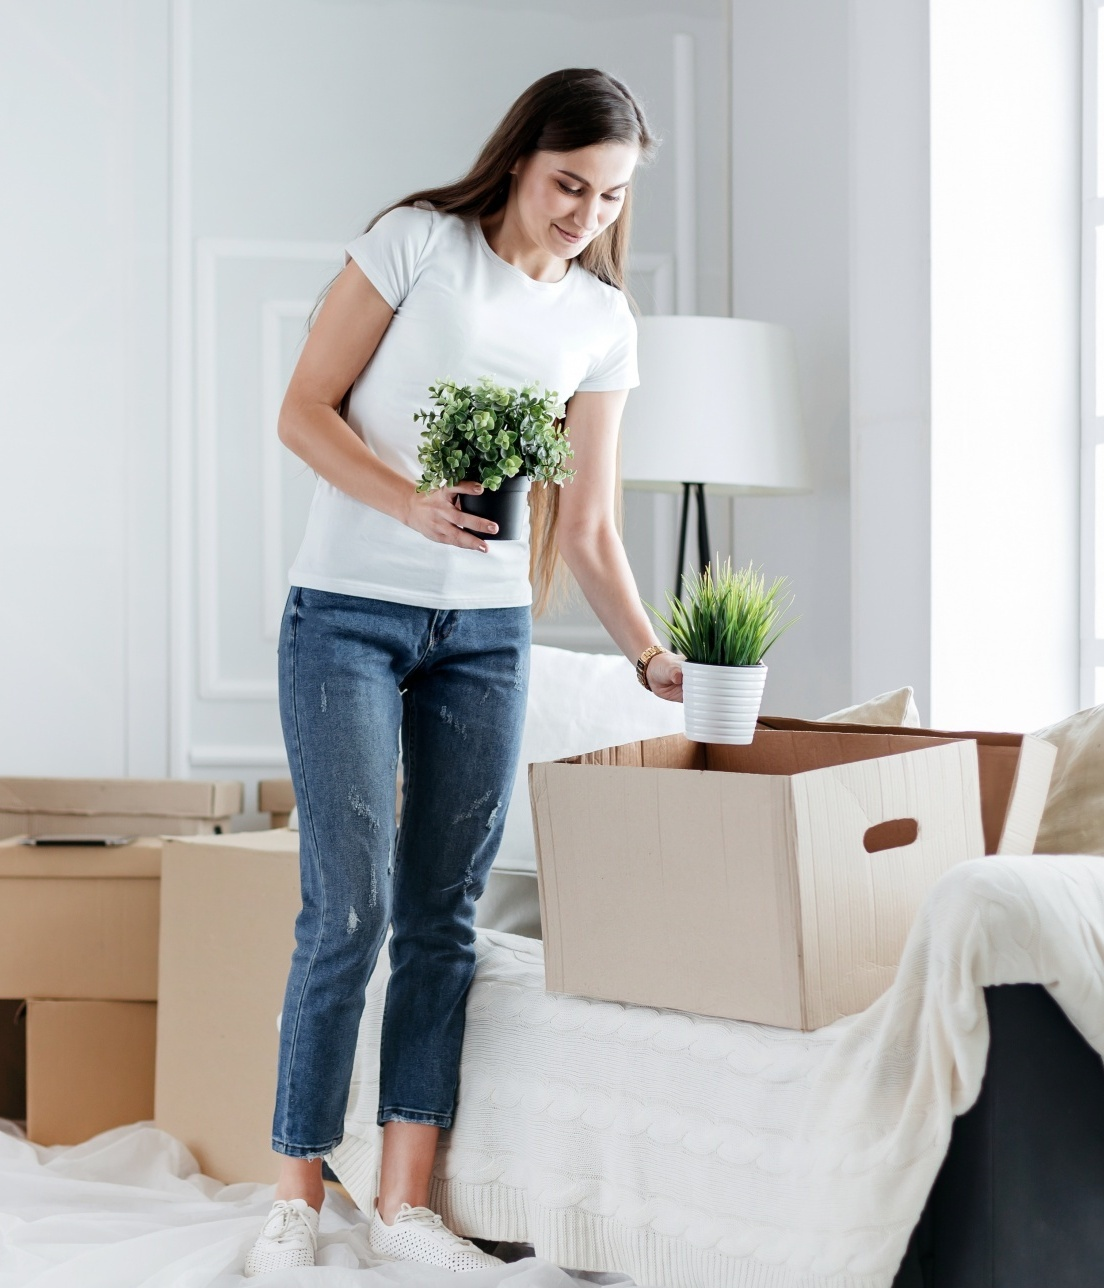 why reinventing yourself makes you younger, Dark haired woman in cropped jeans and white tee unpacking boxesDark haired woman in cropped jeans and white tee unpacking boxes